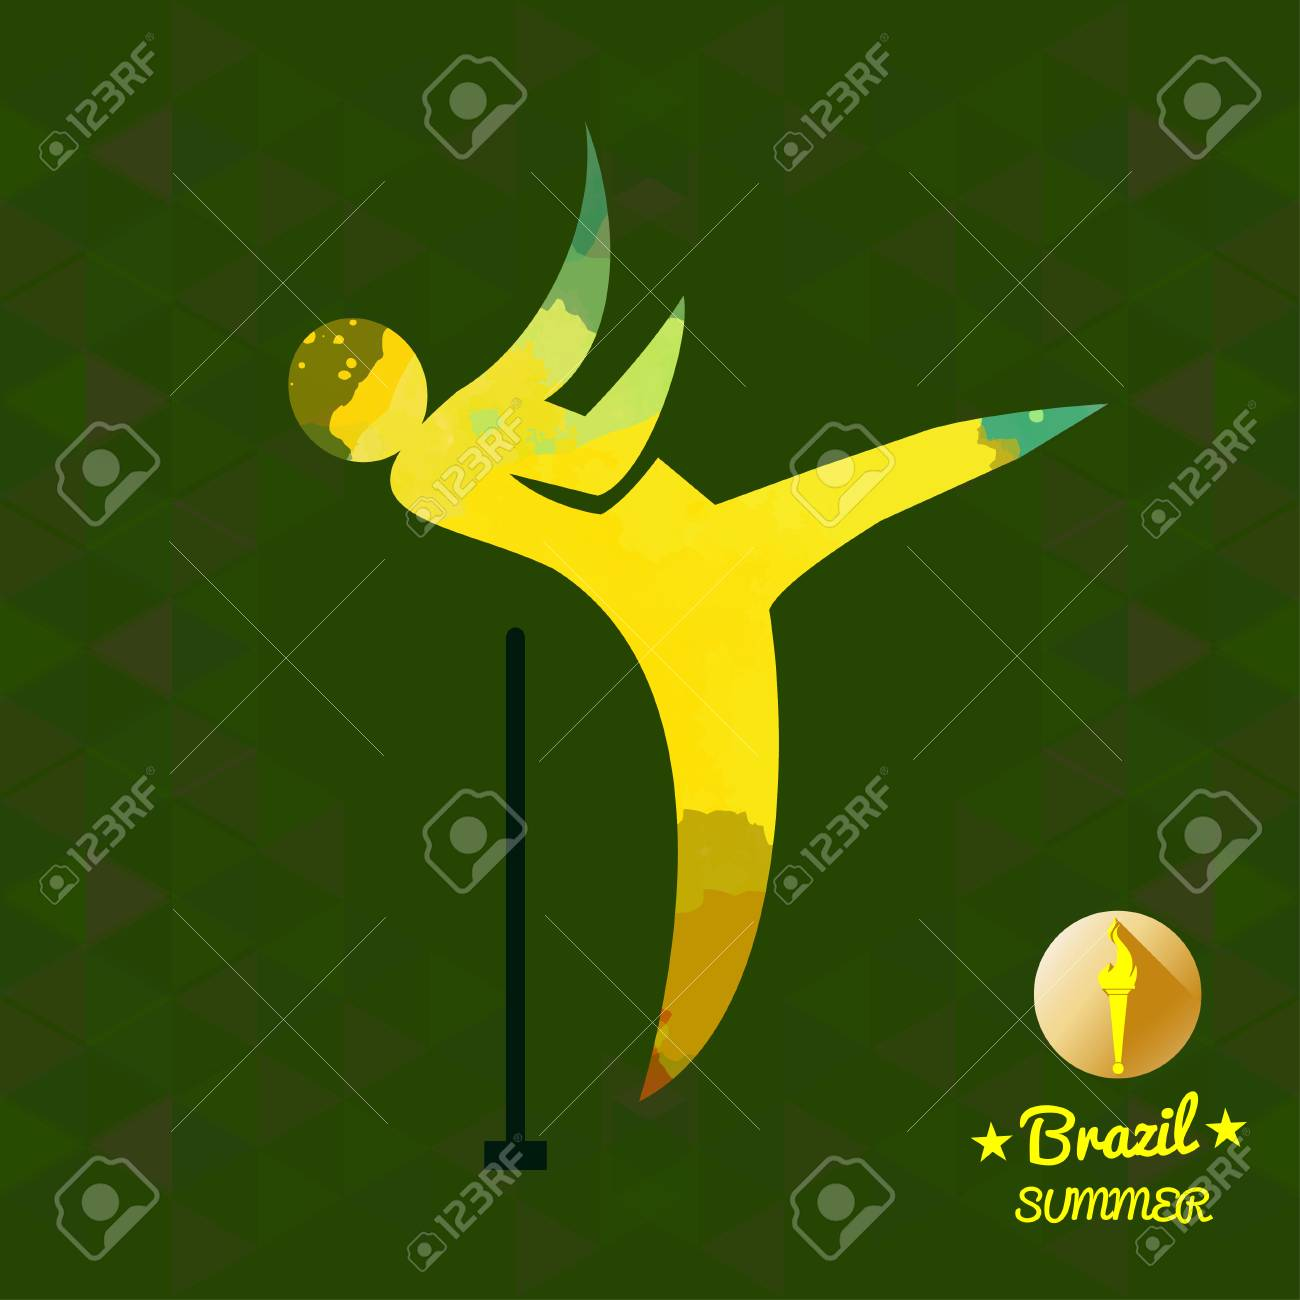 Brazil summer sport card with an yellow abstract hammer thrower